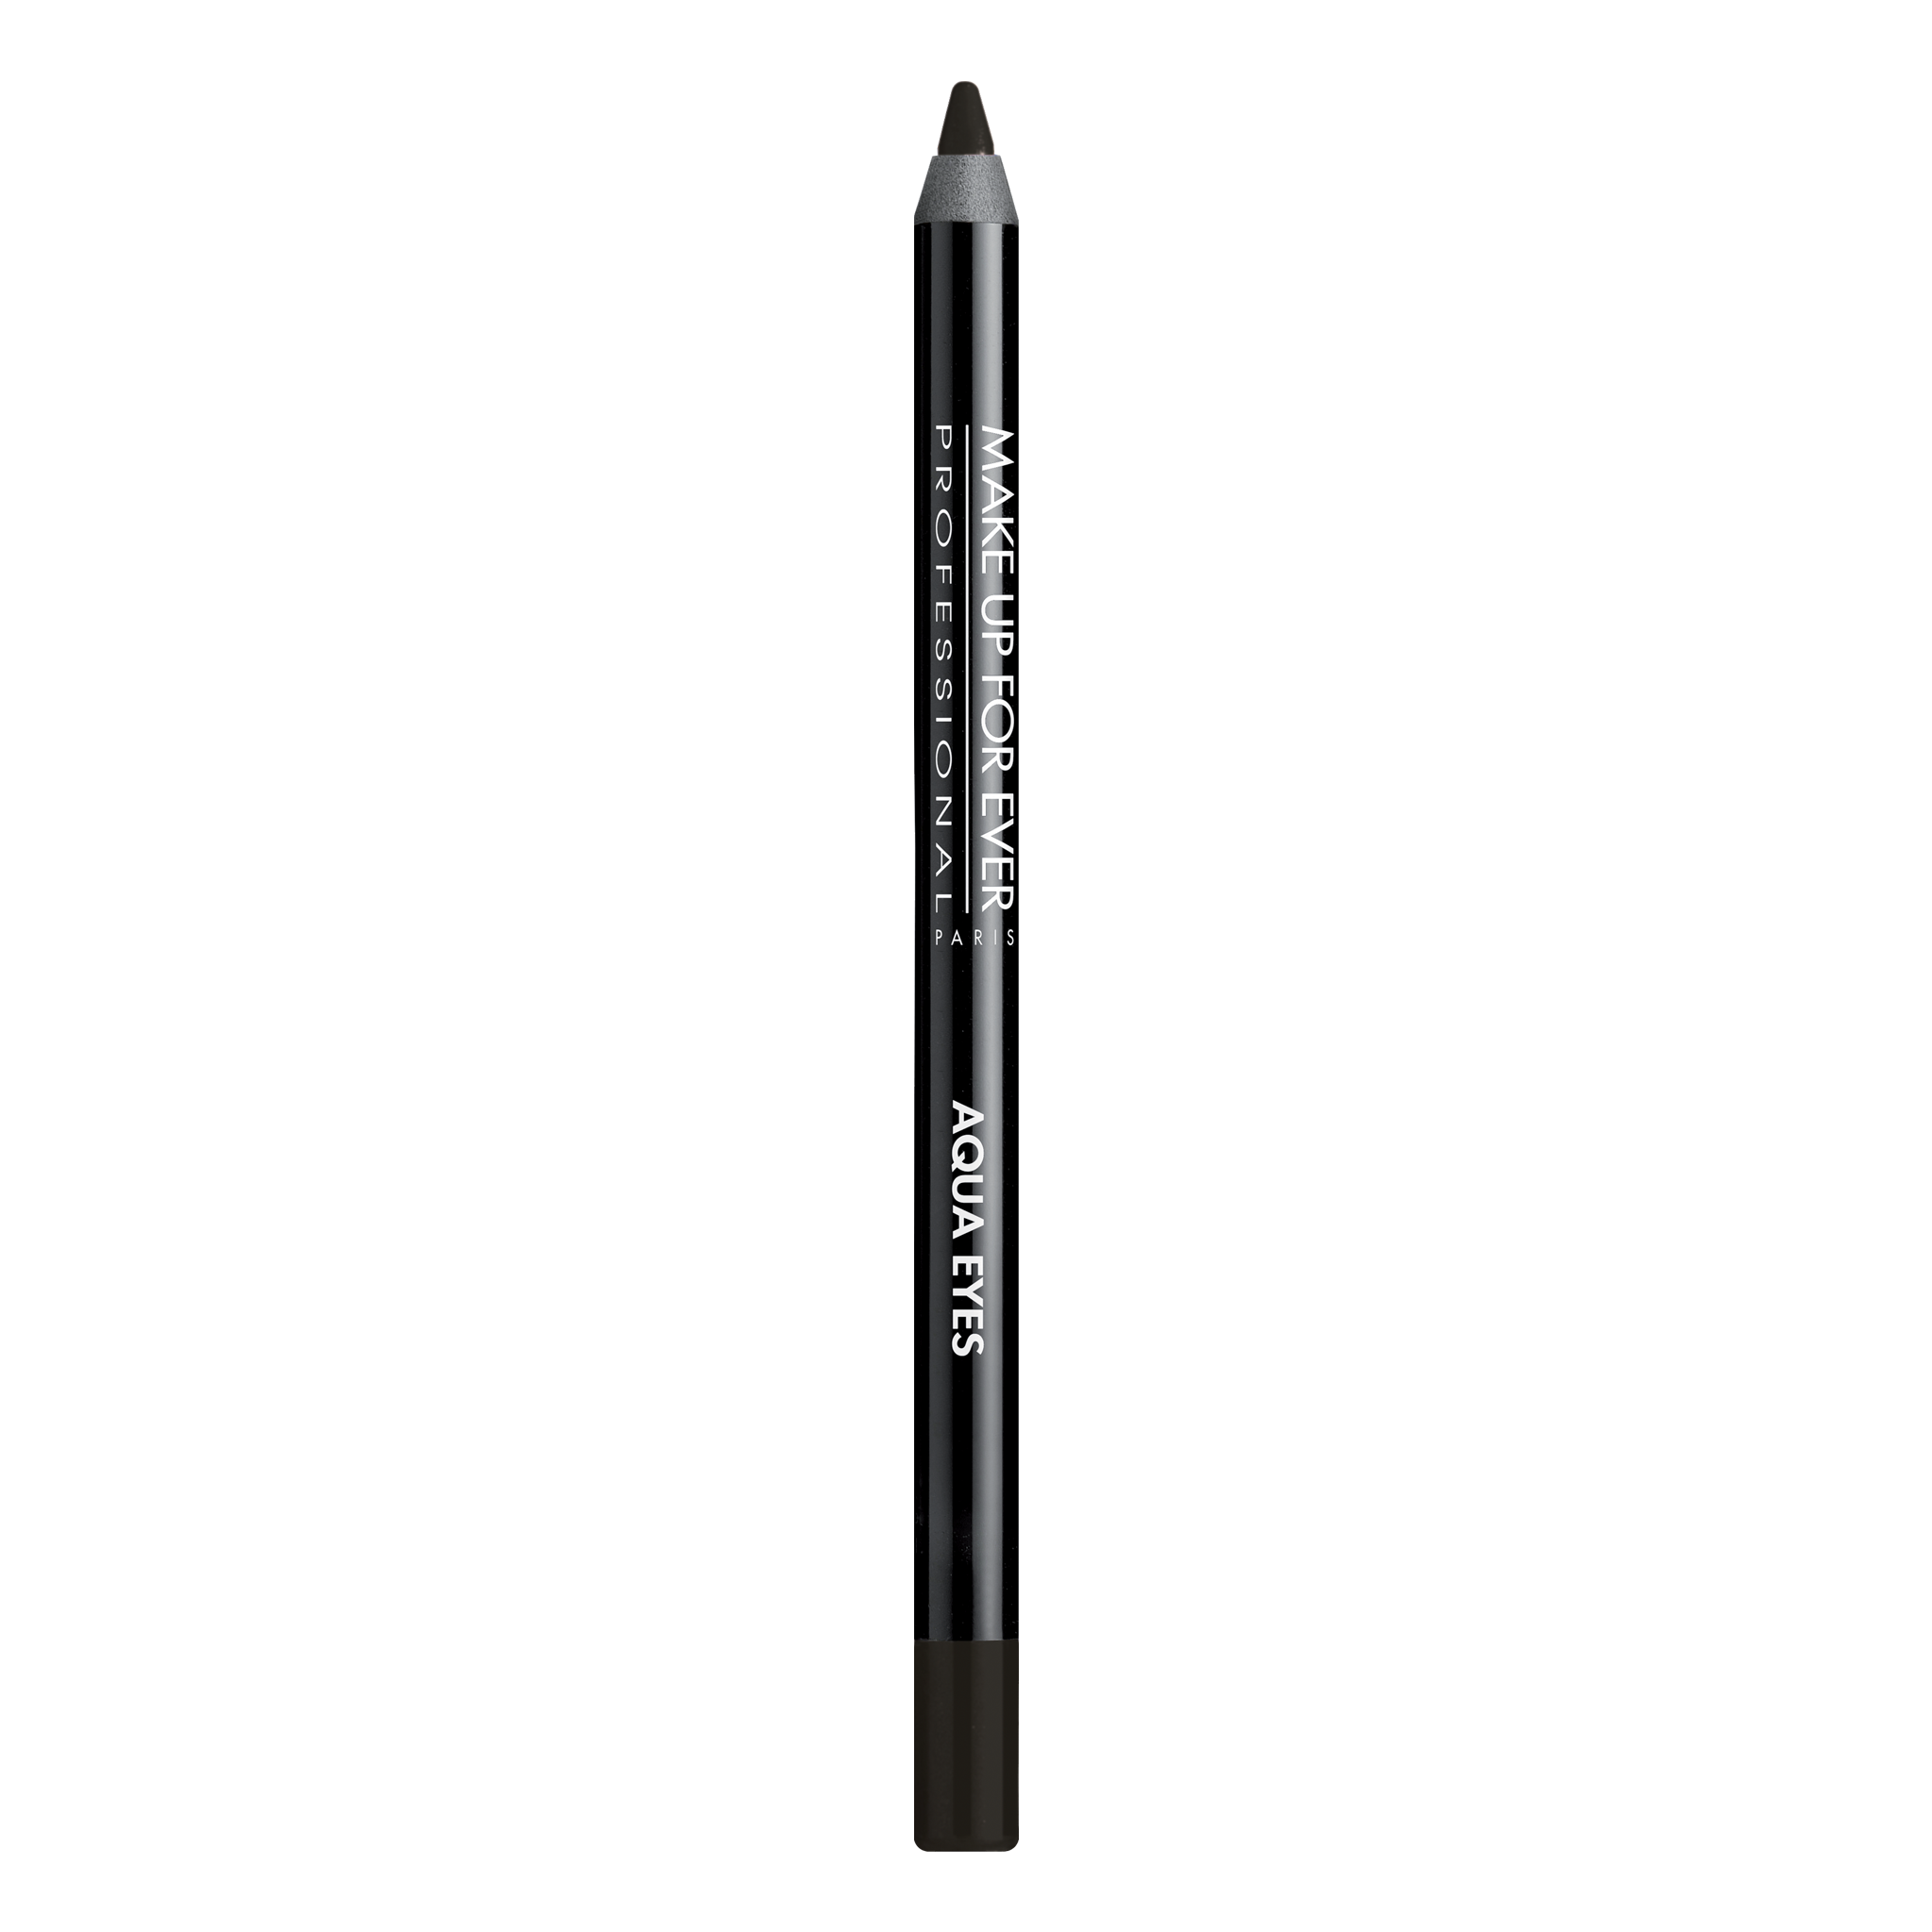 Make Up For Ever waterproof Eyeliner